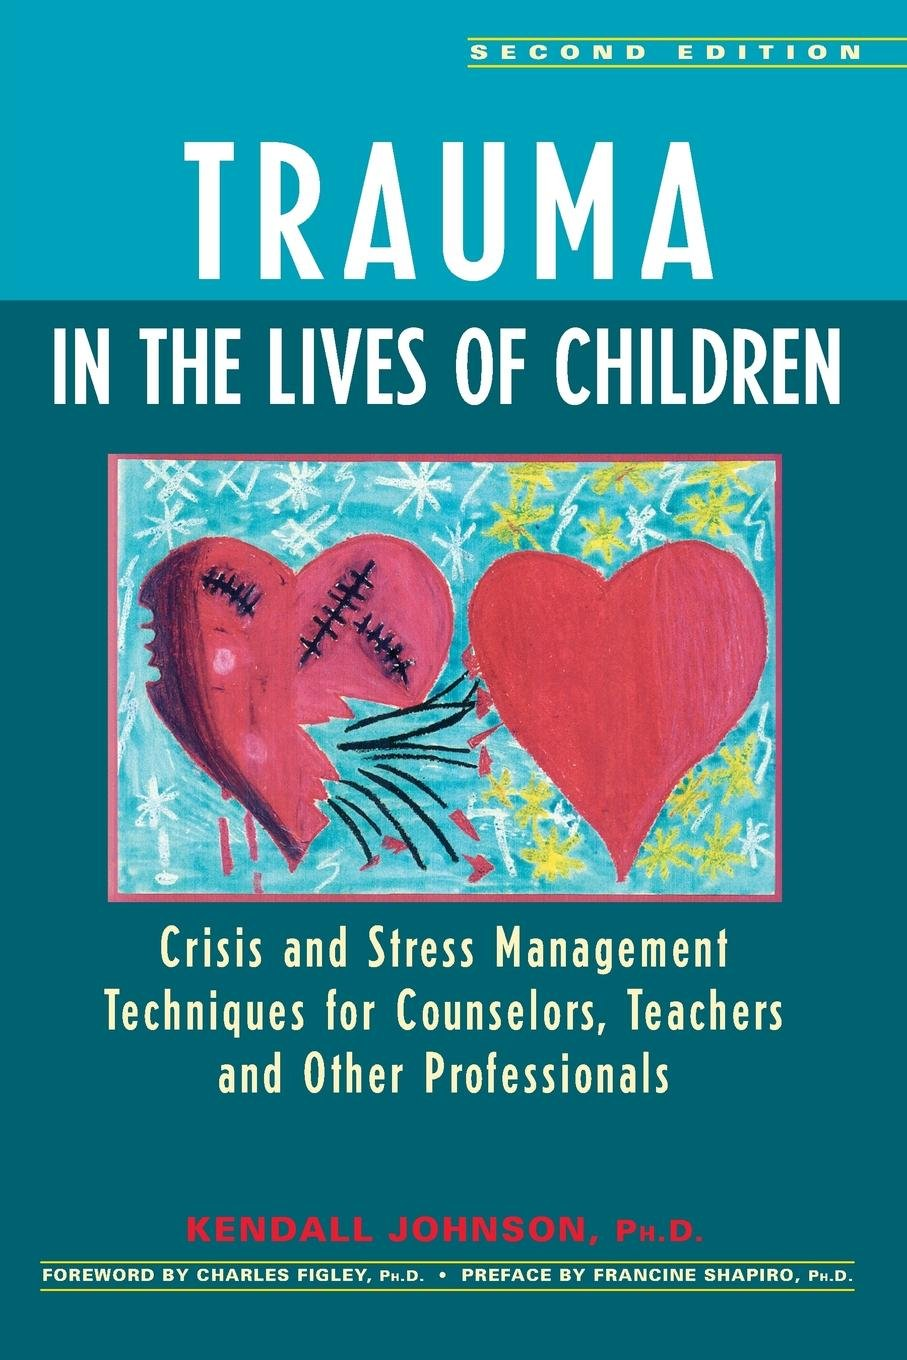 Trauma Lives Children Management Professionals product image